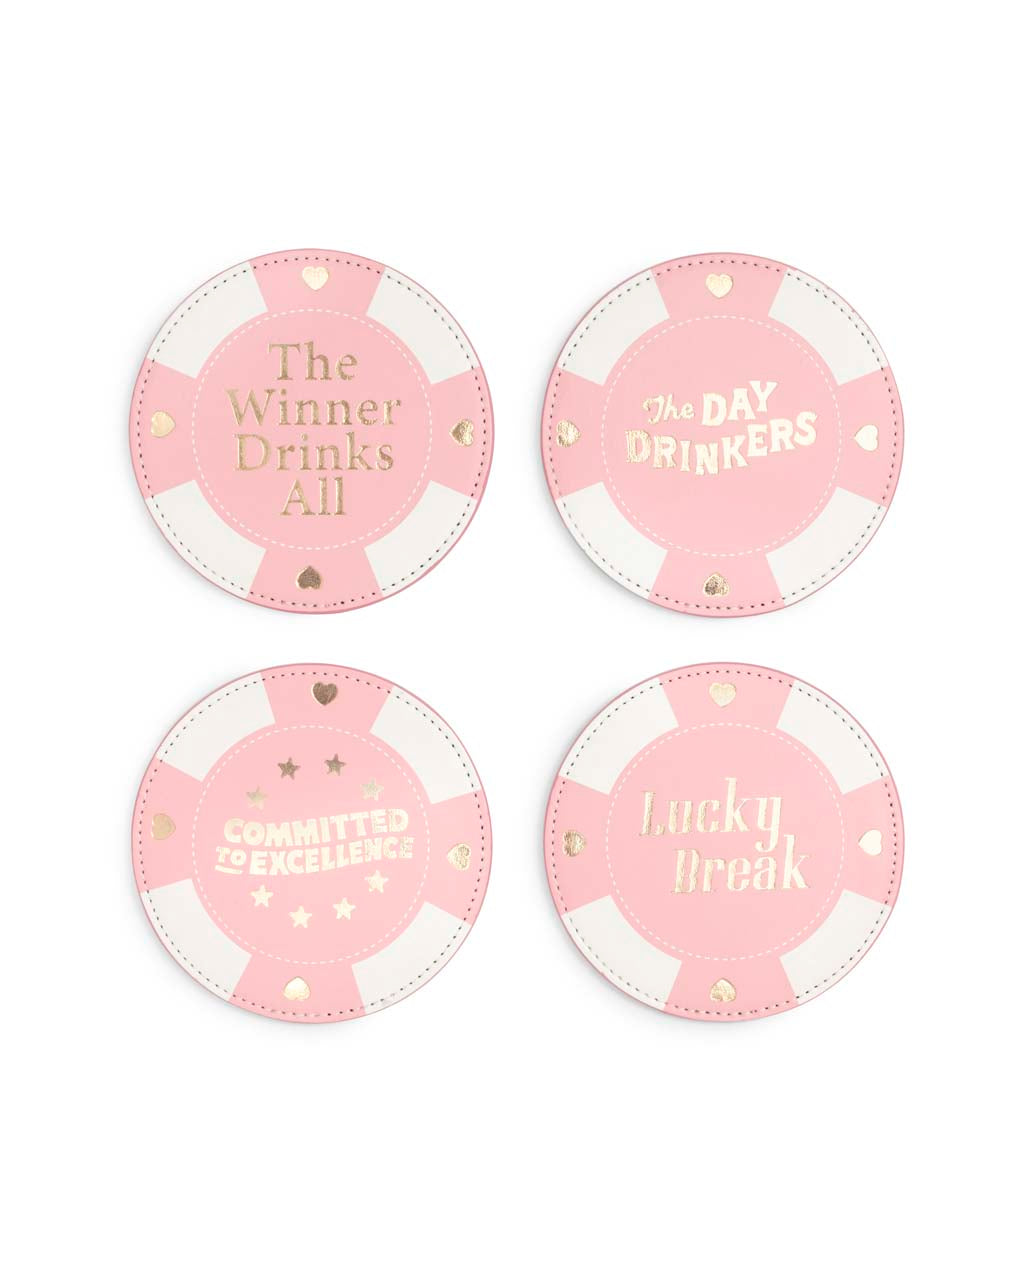 The Party On Coaster Set comes in a pink poker chip design.